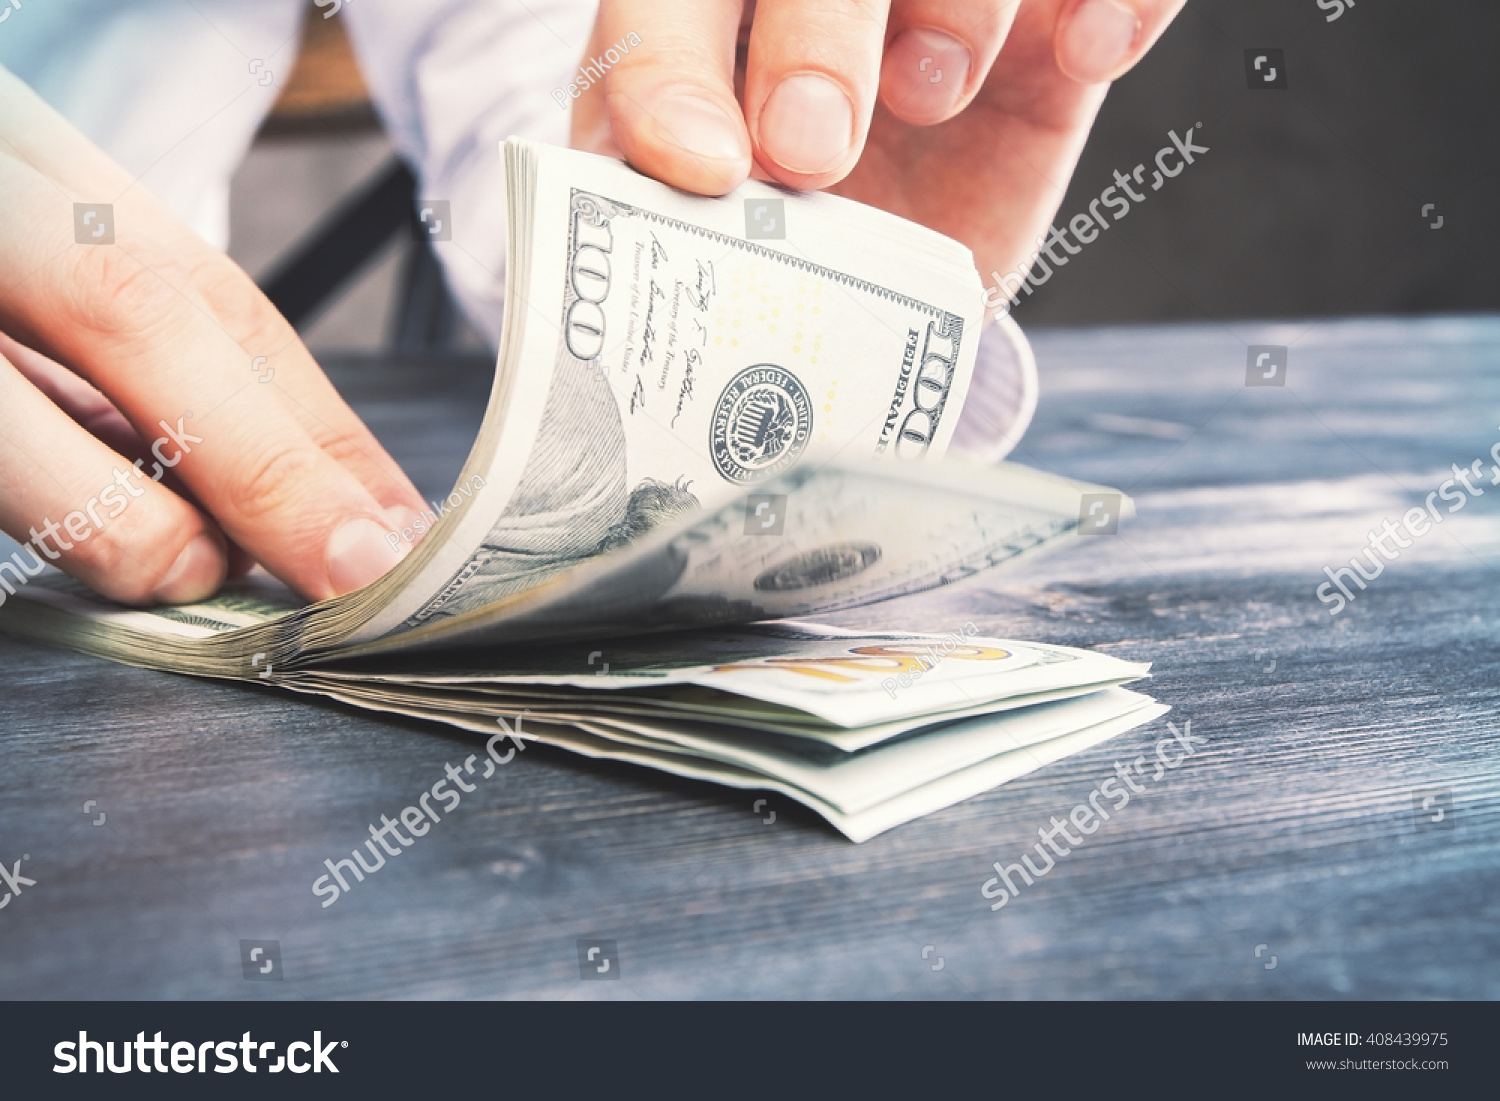 worksheet Counting Dollar Bills caucasian hands counting dollar bills on stock photo 408439975 darw wooden table